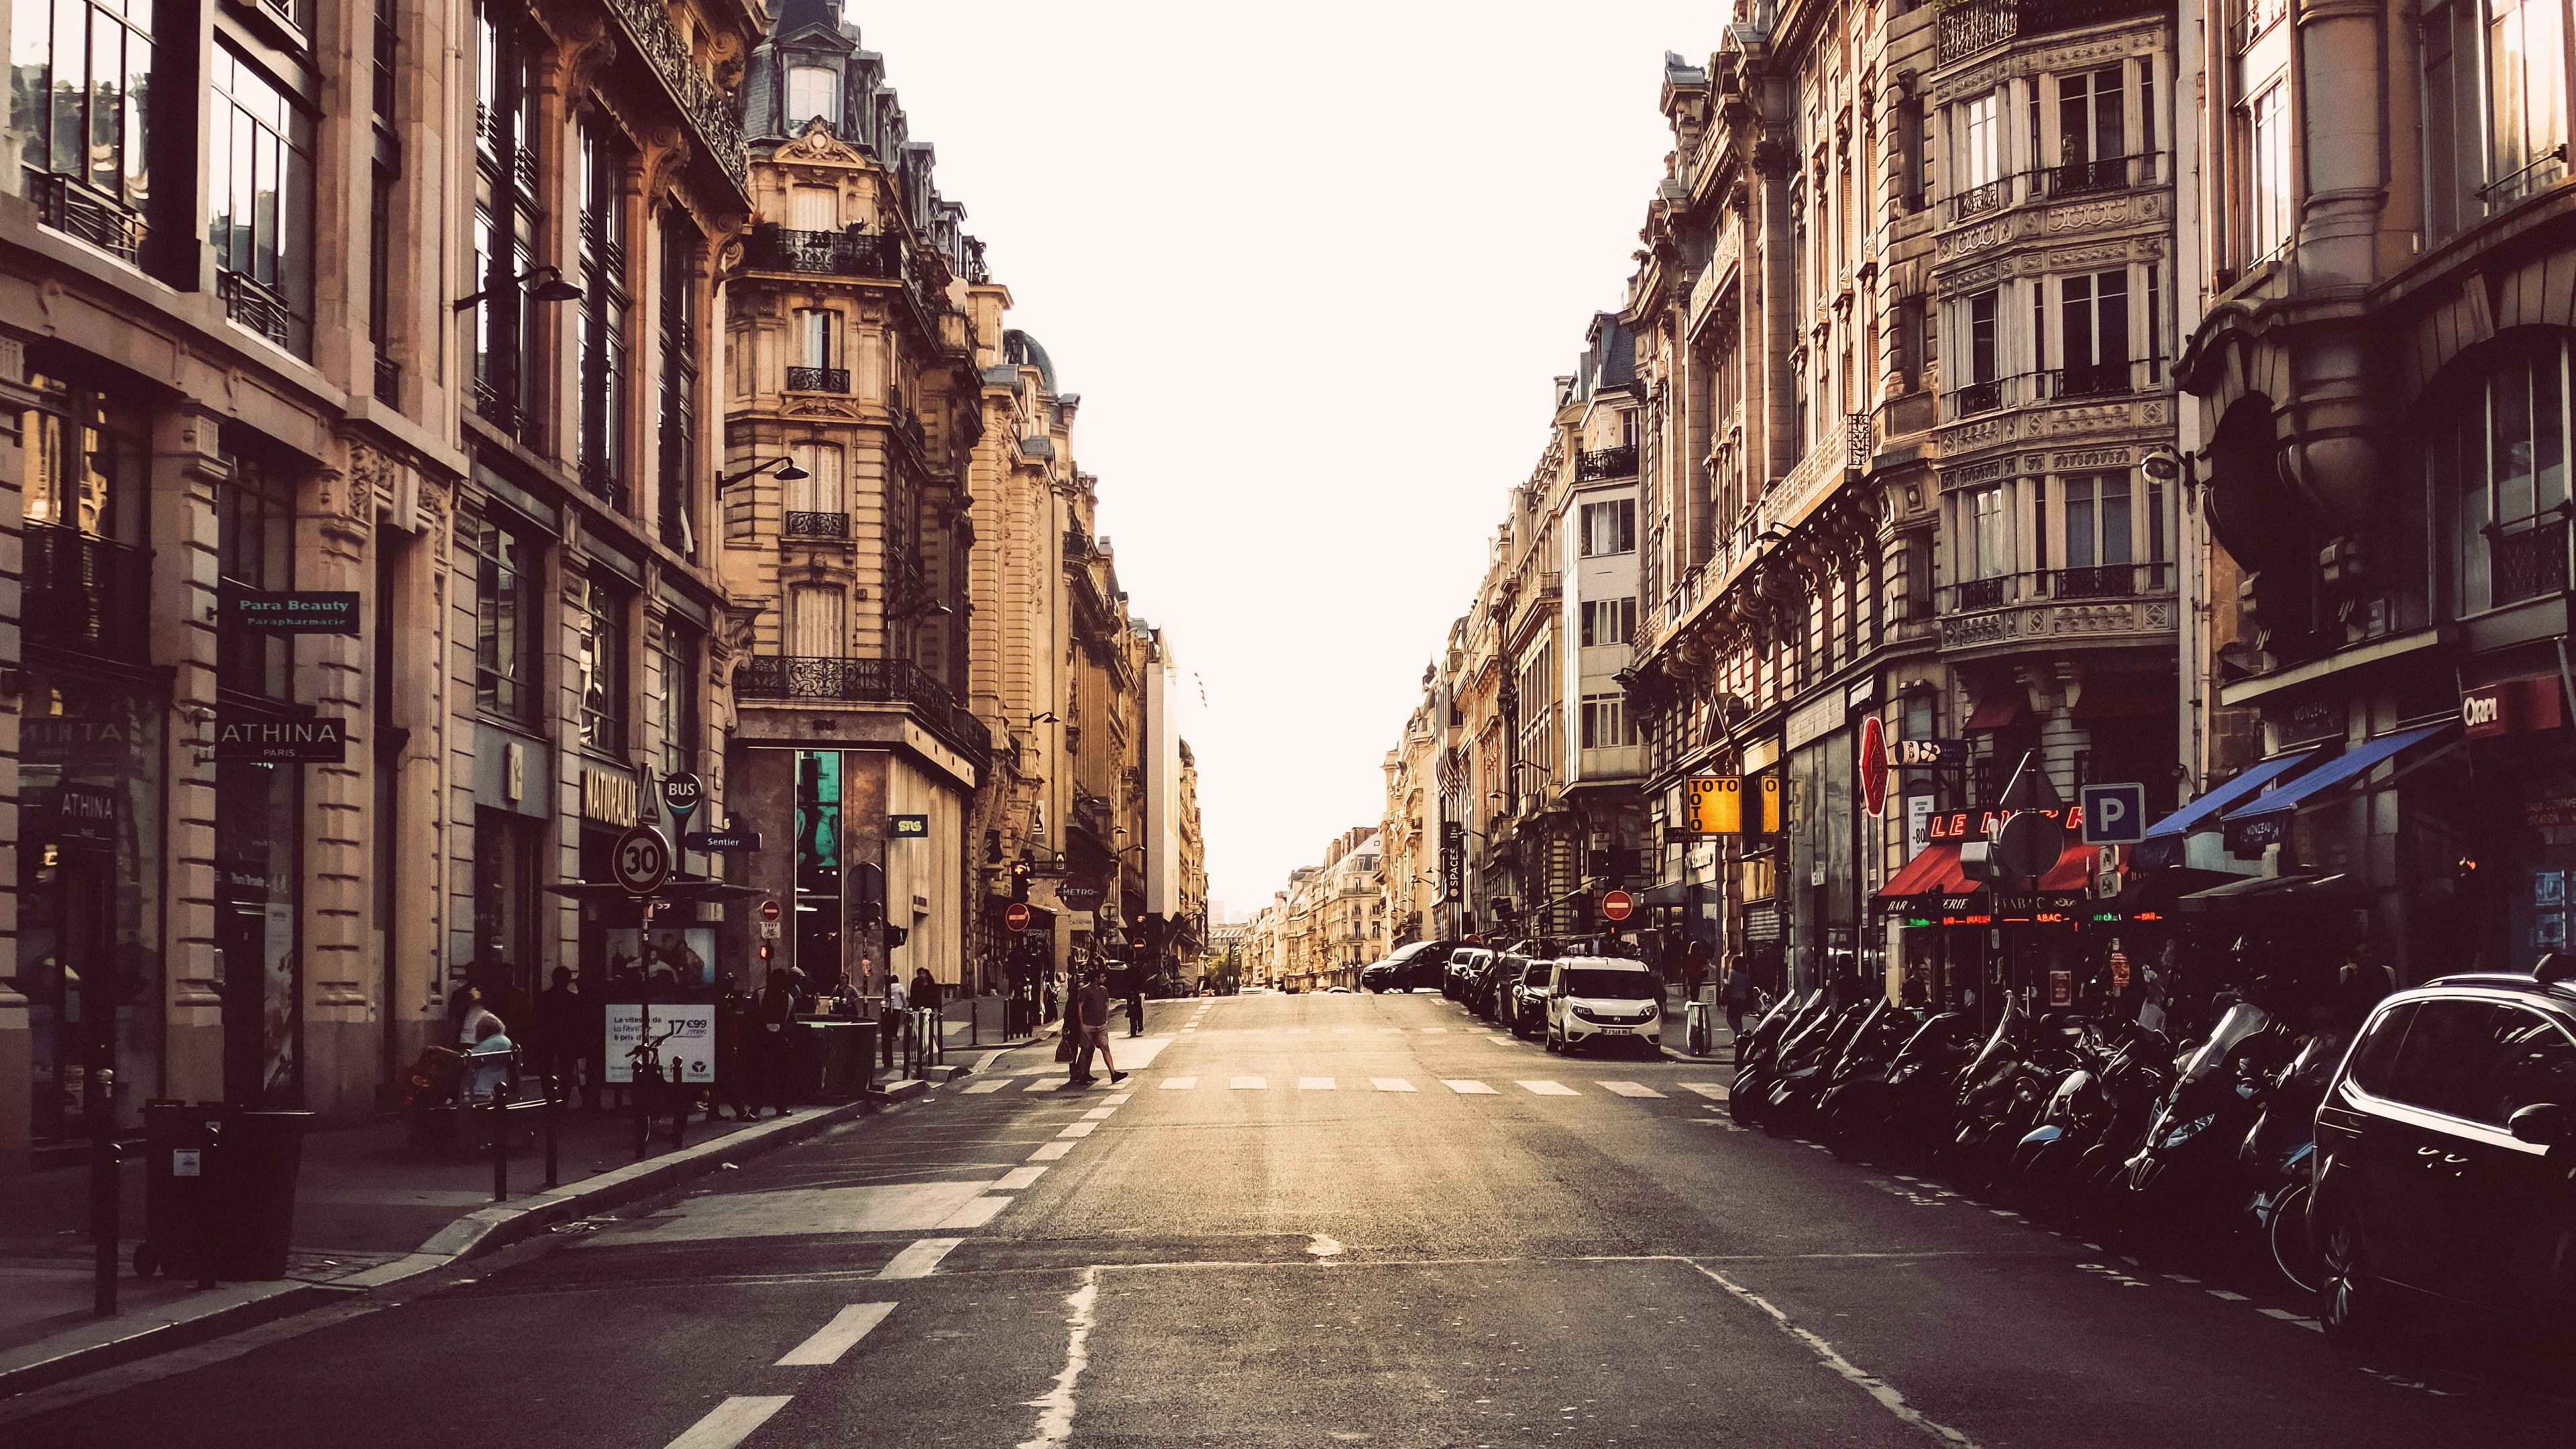 Street Urban Cityscape City Photography Road Paris 4k Wallpaper Hdwallpaper Desktop In 2020 Cityscape Cityscape Photography Paris Wallpaper